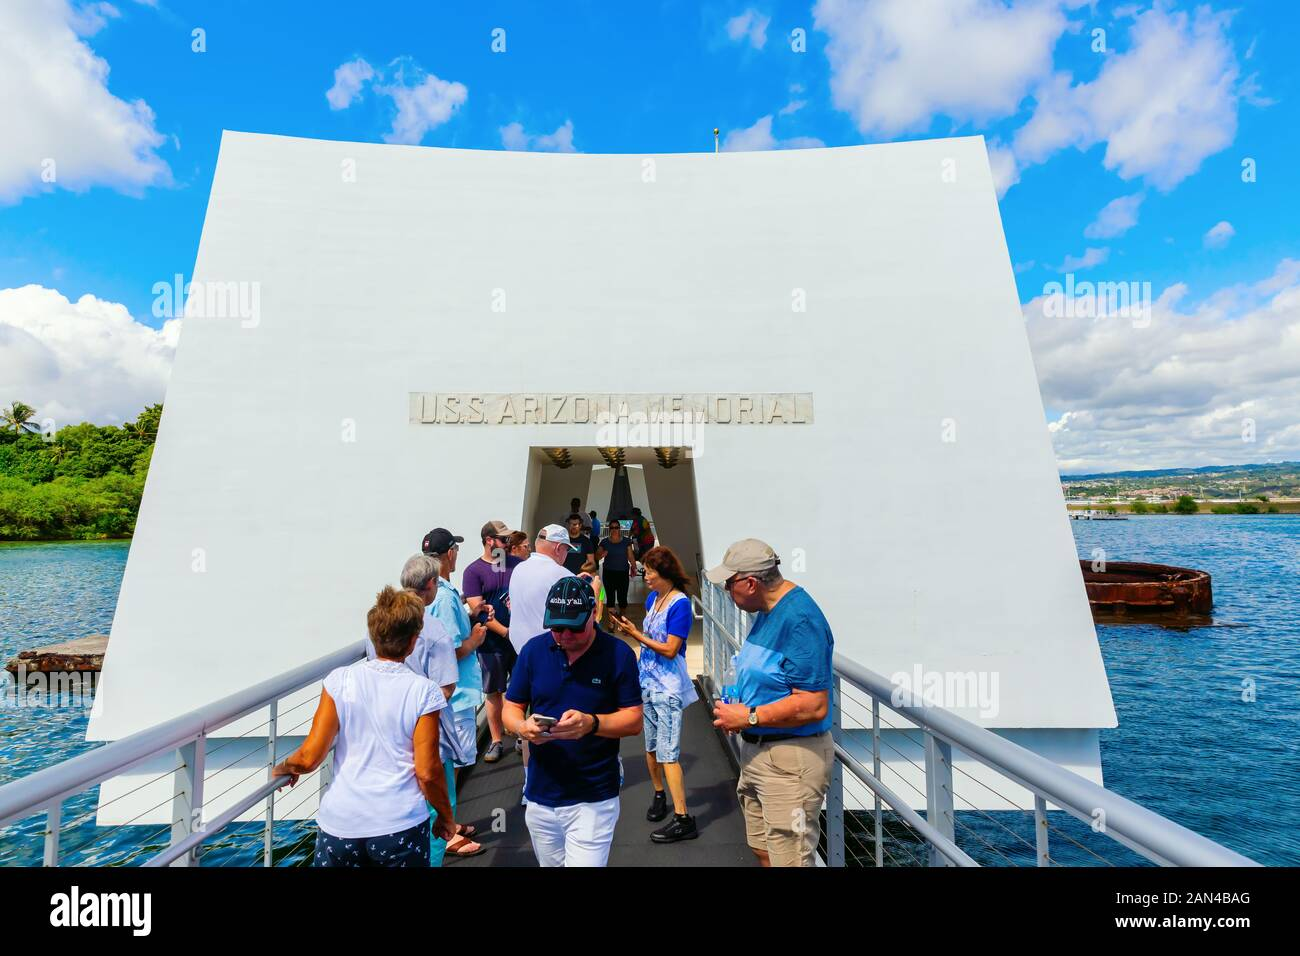 Pearl Harbor, Honolulu, Hawaii - November 05, 2019: U.S.S. Arizona Memorial with unidentified people. The memorial commemorates the Japanese attack on Stock Photo